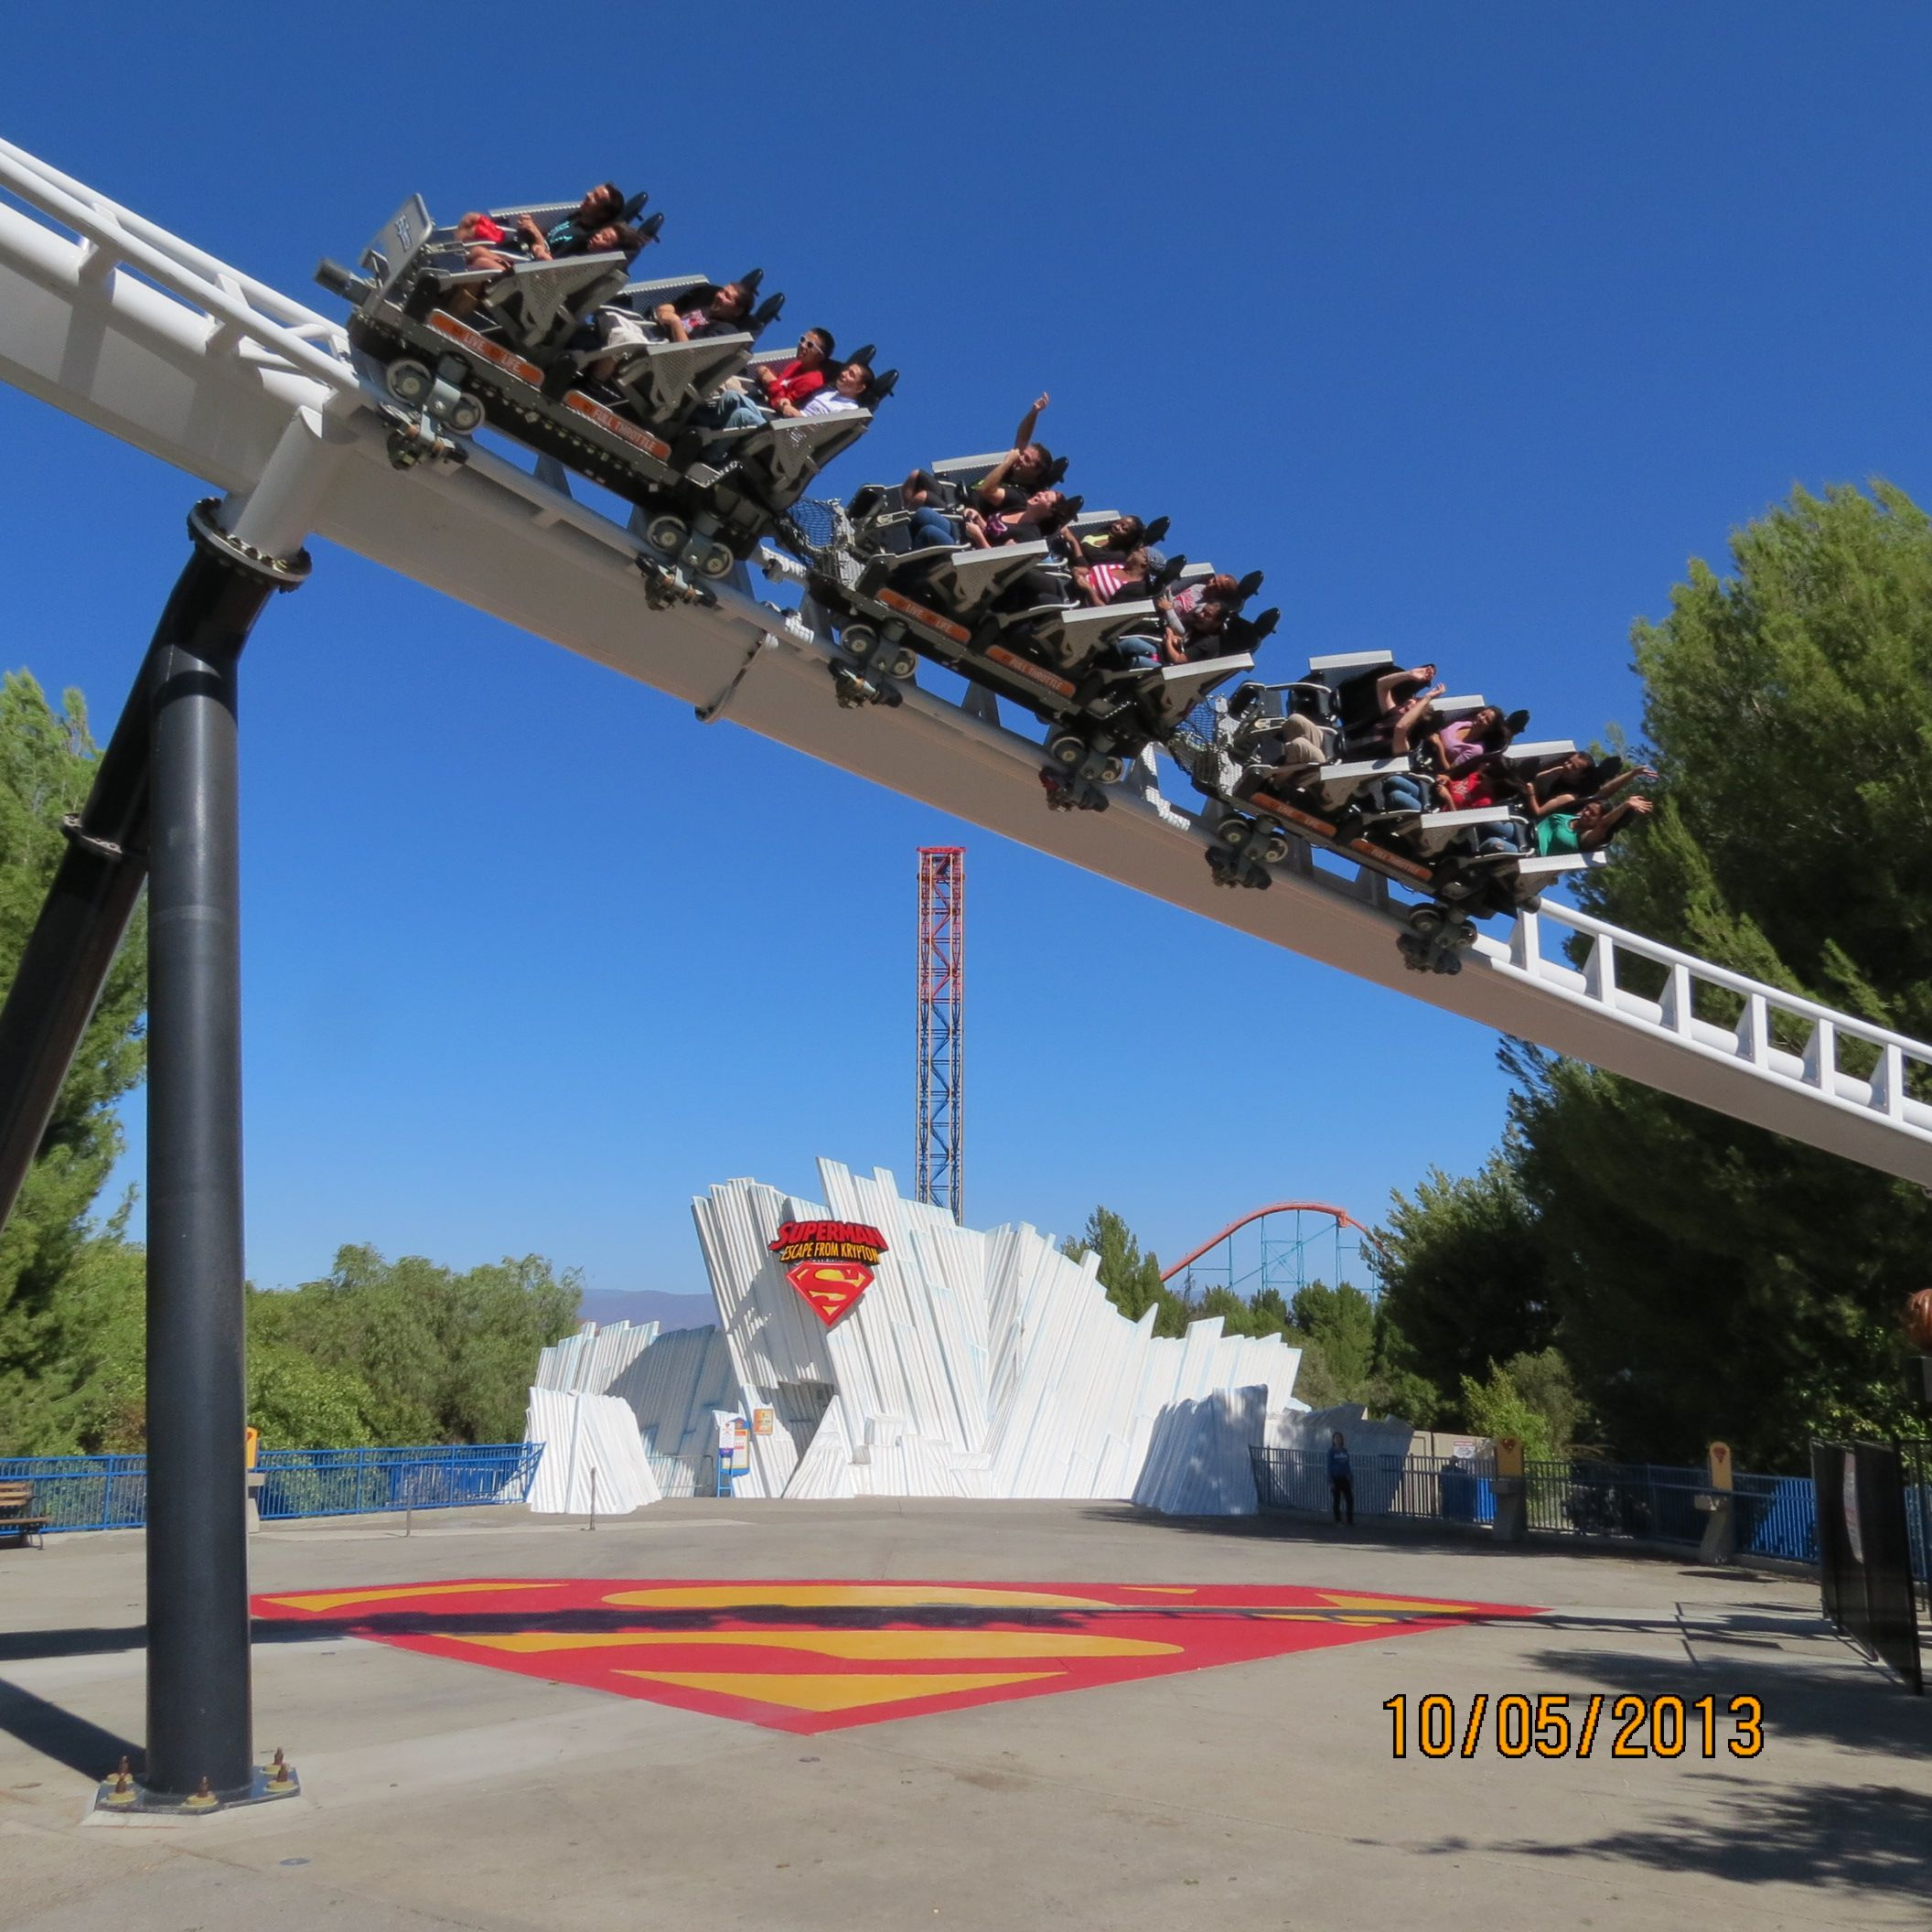 Six Flags Magic Mountain Valencia California Full Throttle Top Superman In The Background Family Vacation Roller Coaster Theme Park